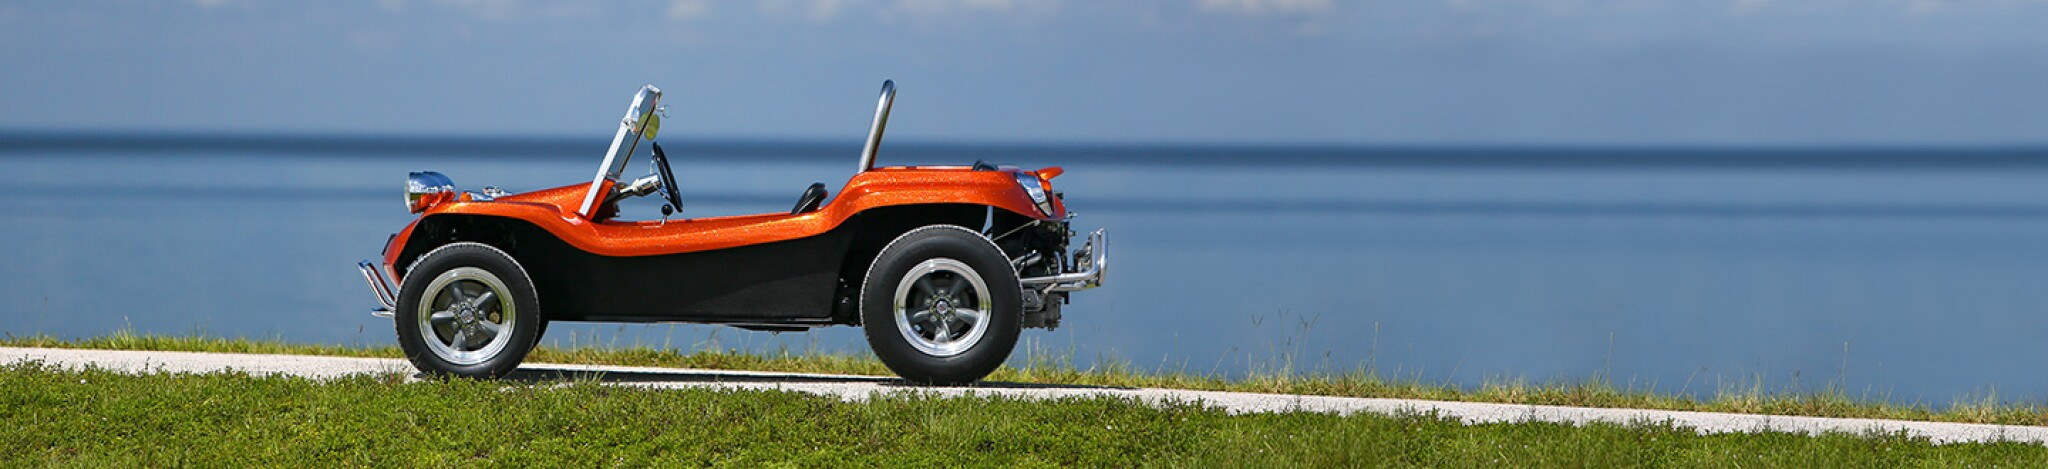 RM Sotheby's Online | Meyers Manx